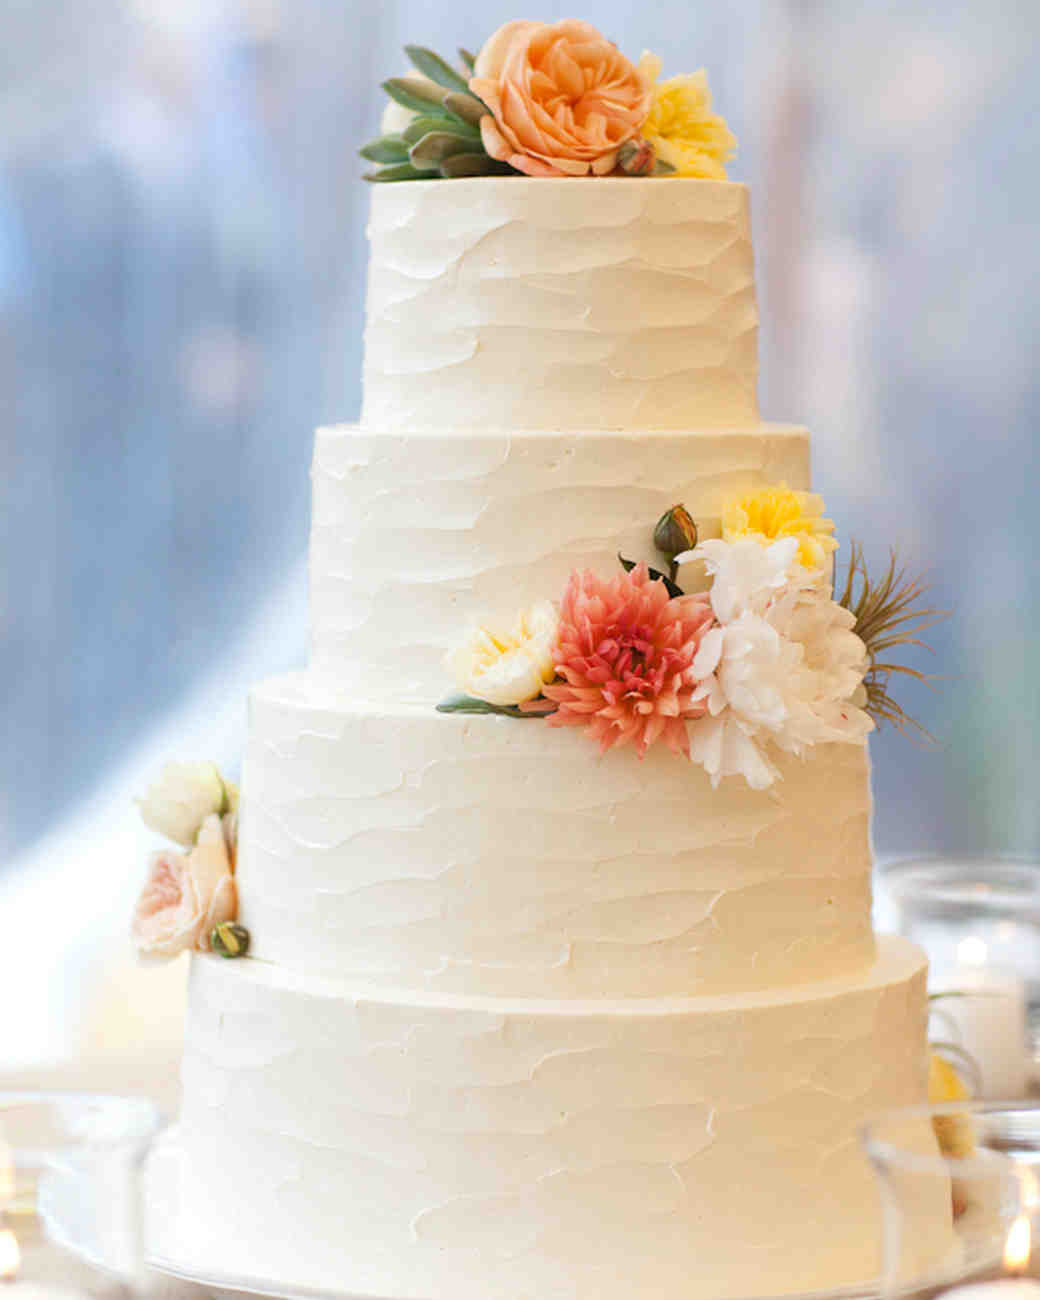 Four-Tiered White Wedding Cake with Orange, White, and Yellow Flowers